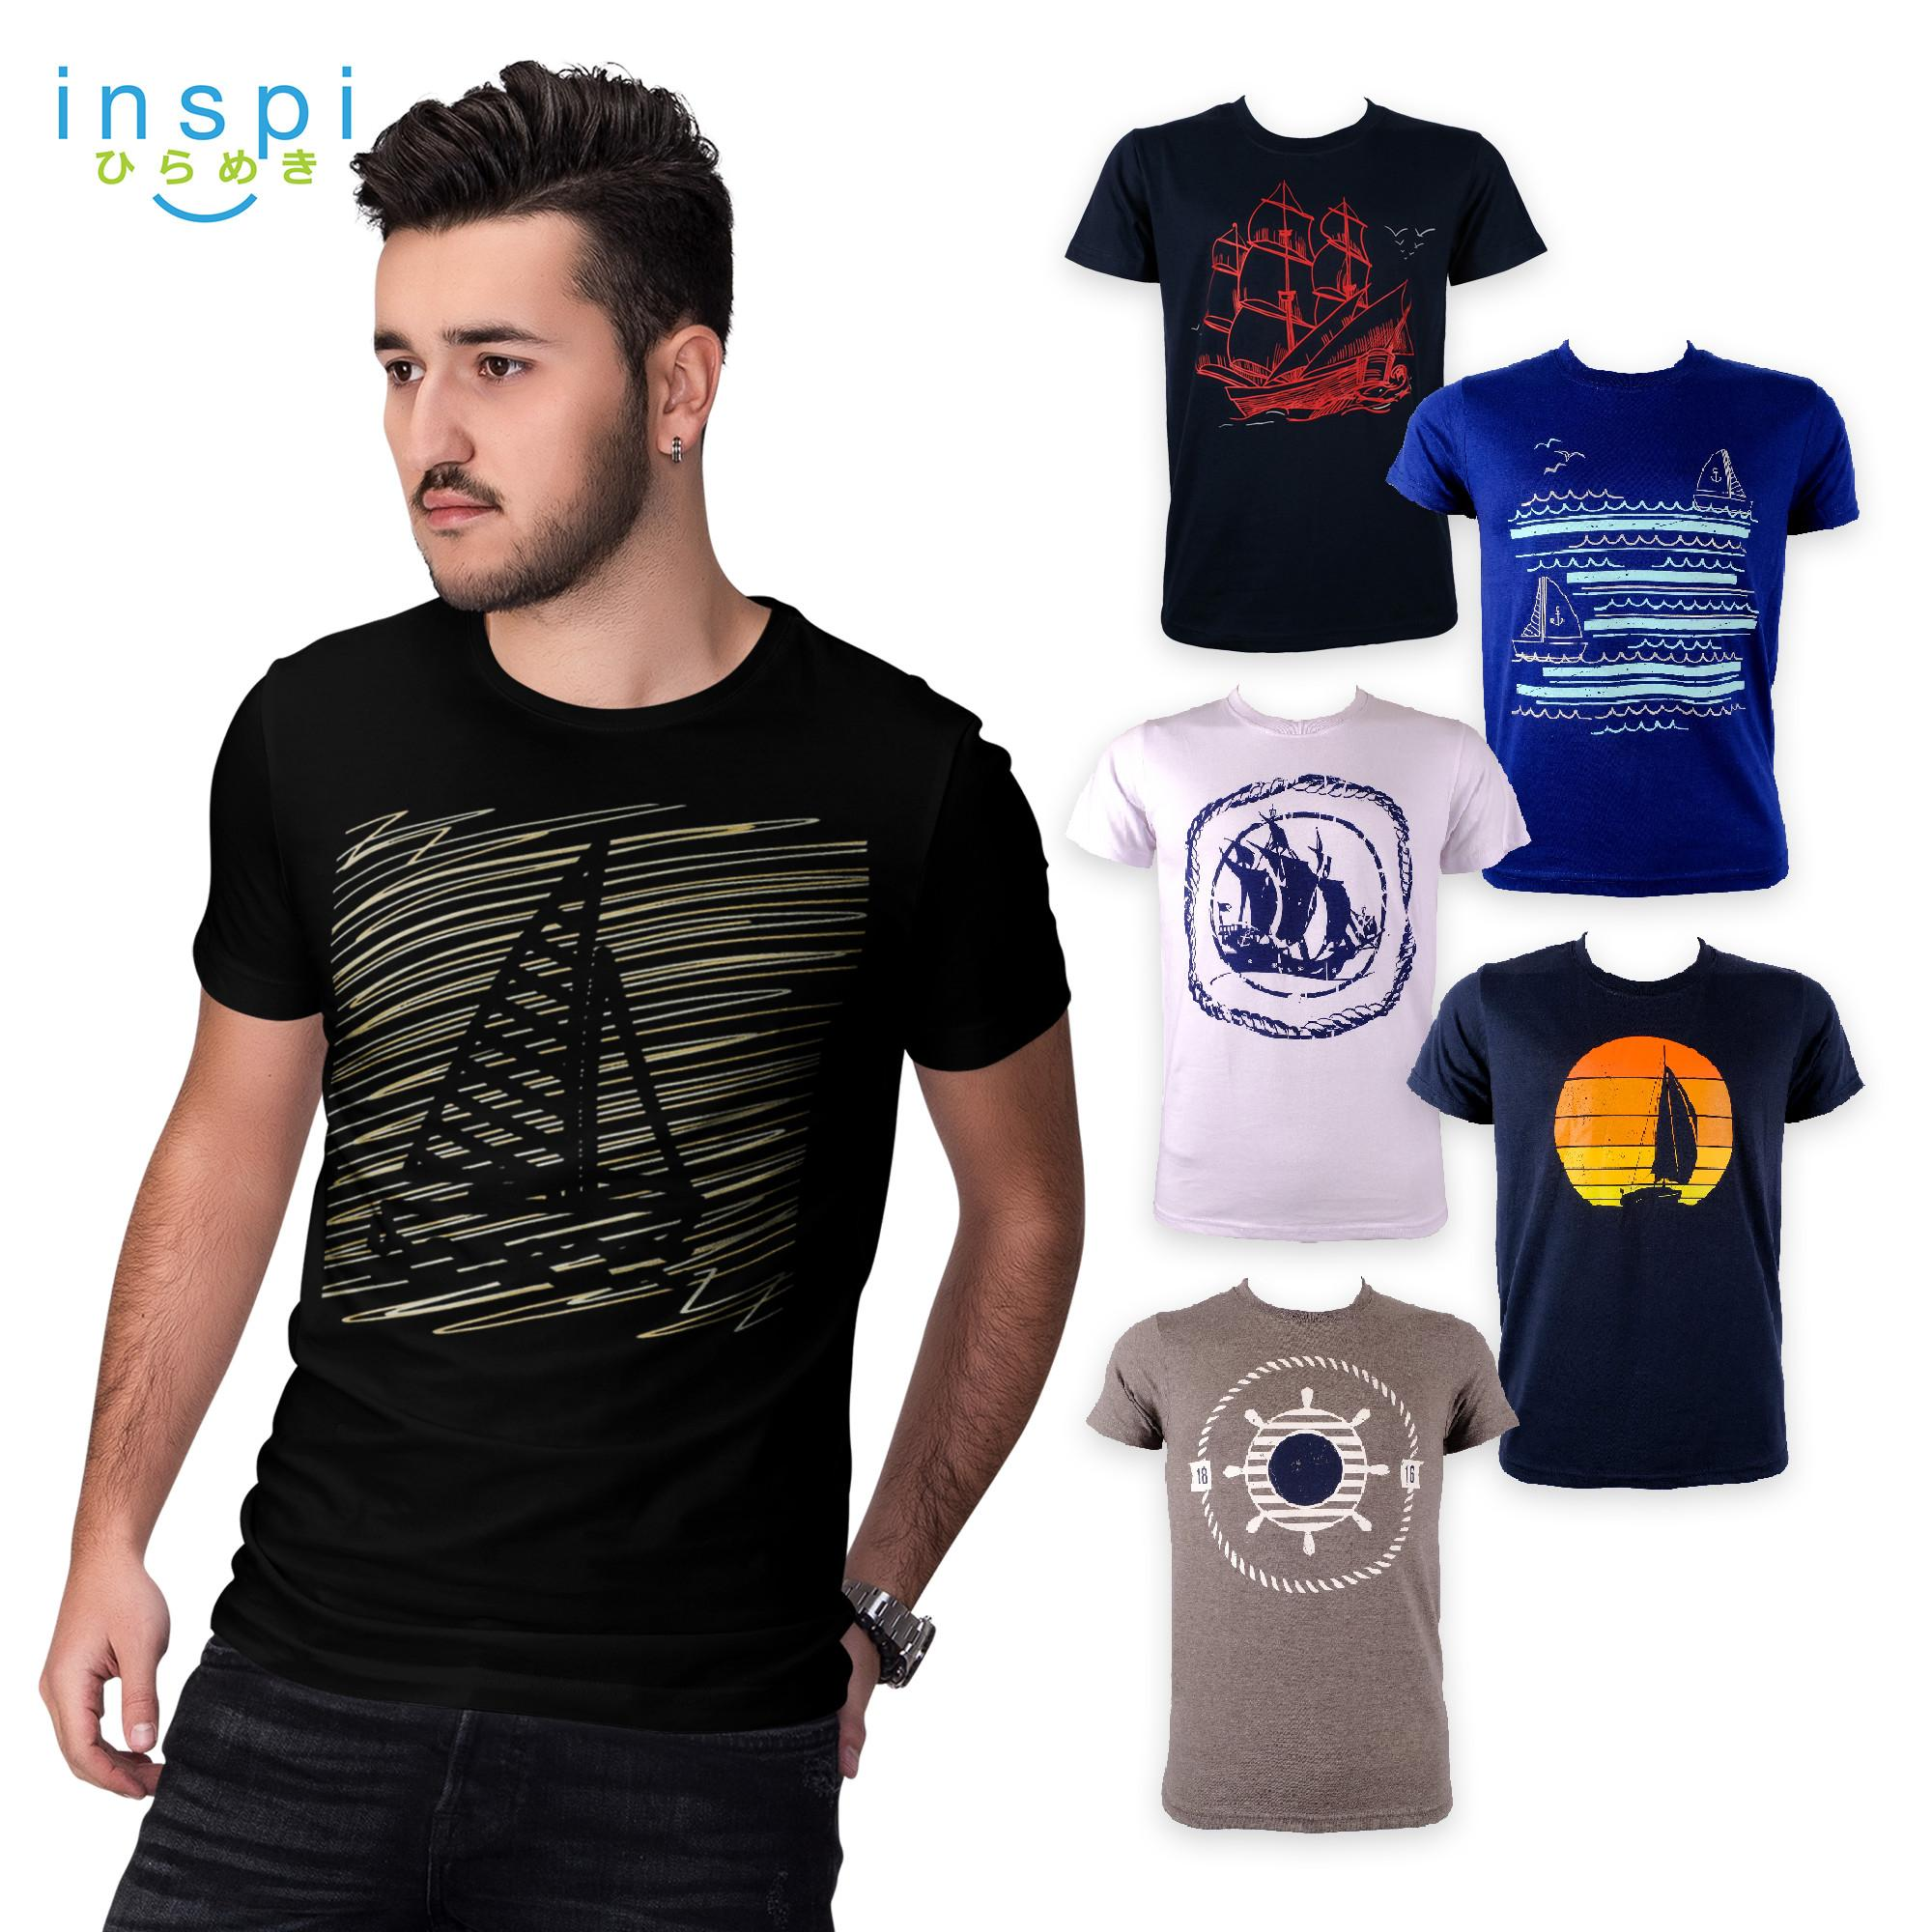 f50ca56c887a INSPI Tees Sailing Collection tshirt printed graphic tee Mens t shirt shirts  for men tshirts sale